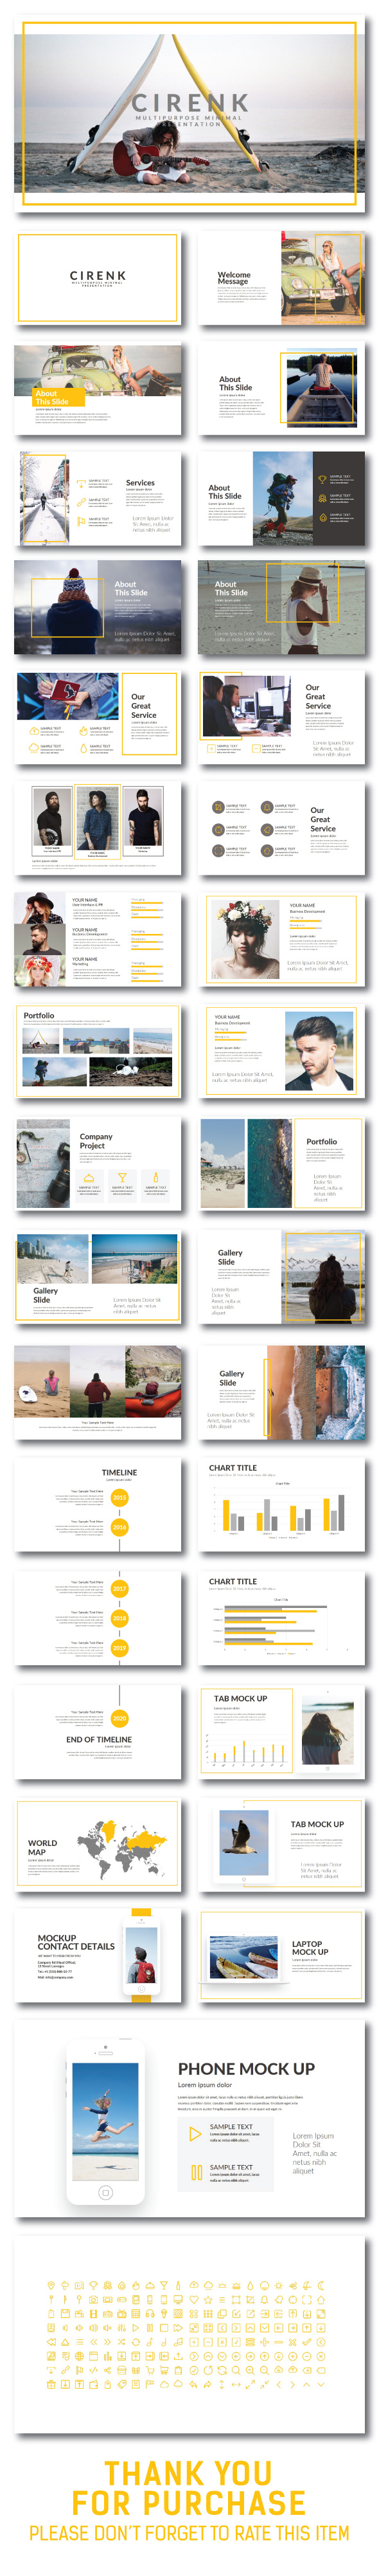 Cirenk Presentation Template - Creative PowerPoint Templates